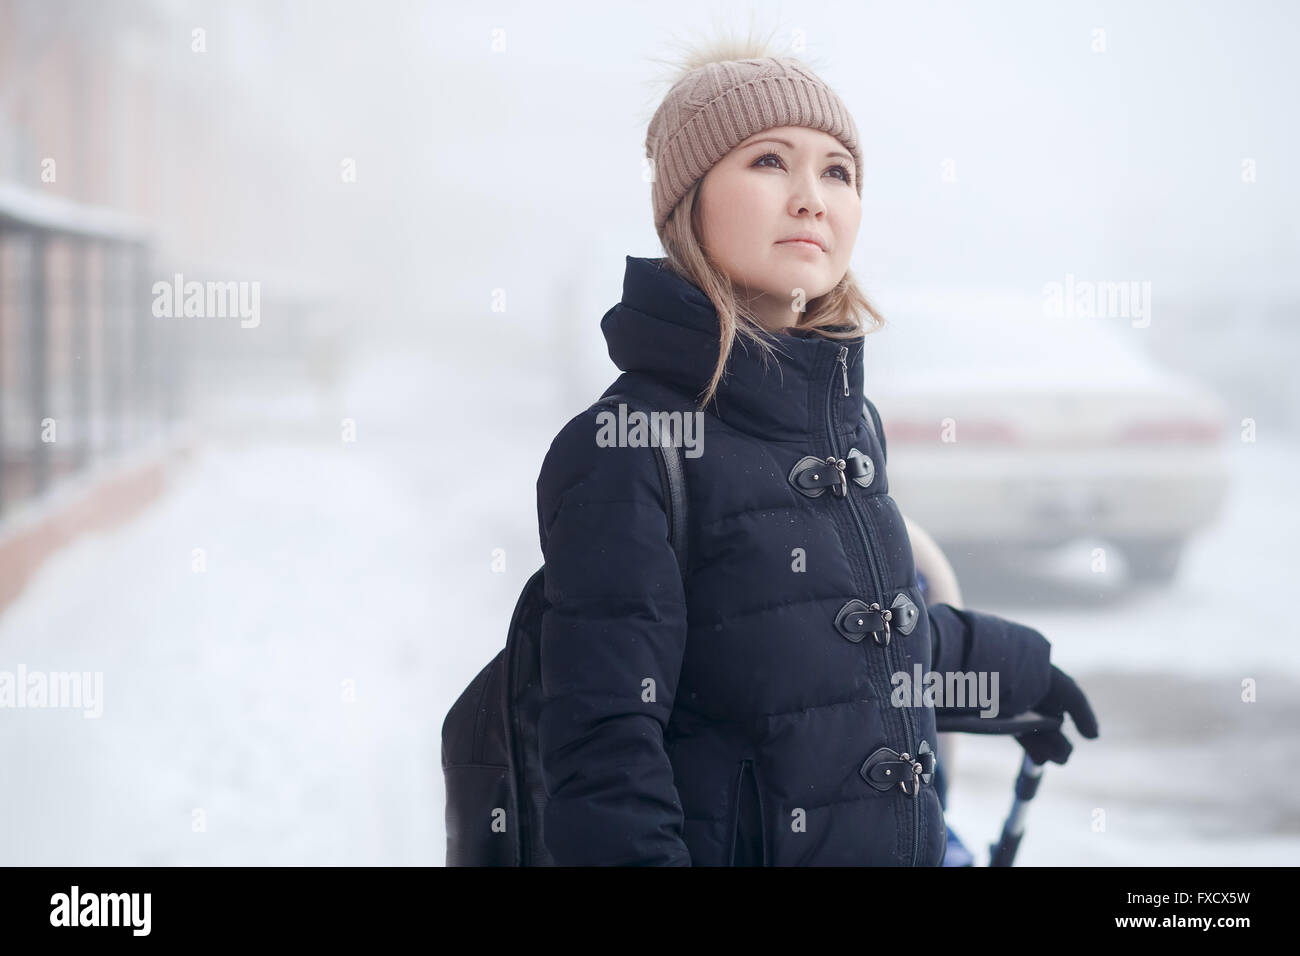 Young woman with stroller walking in winter, looks thoughtfully at sky. - Stock Image